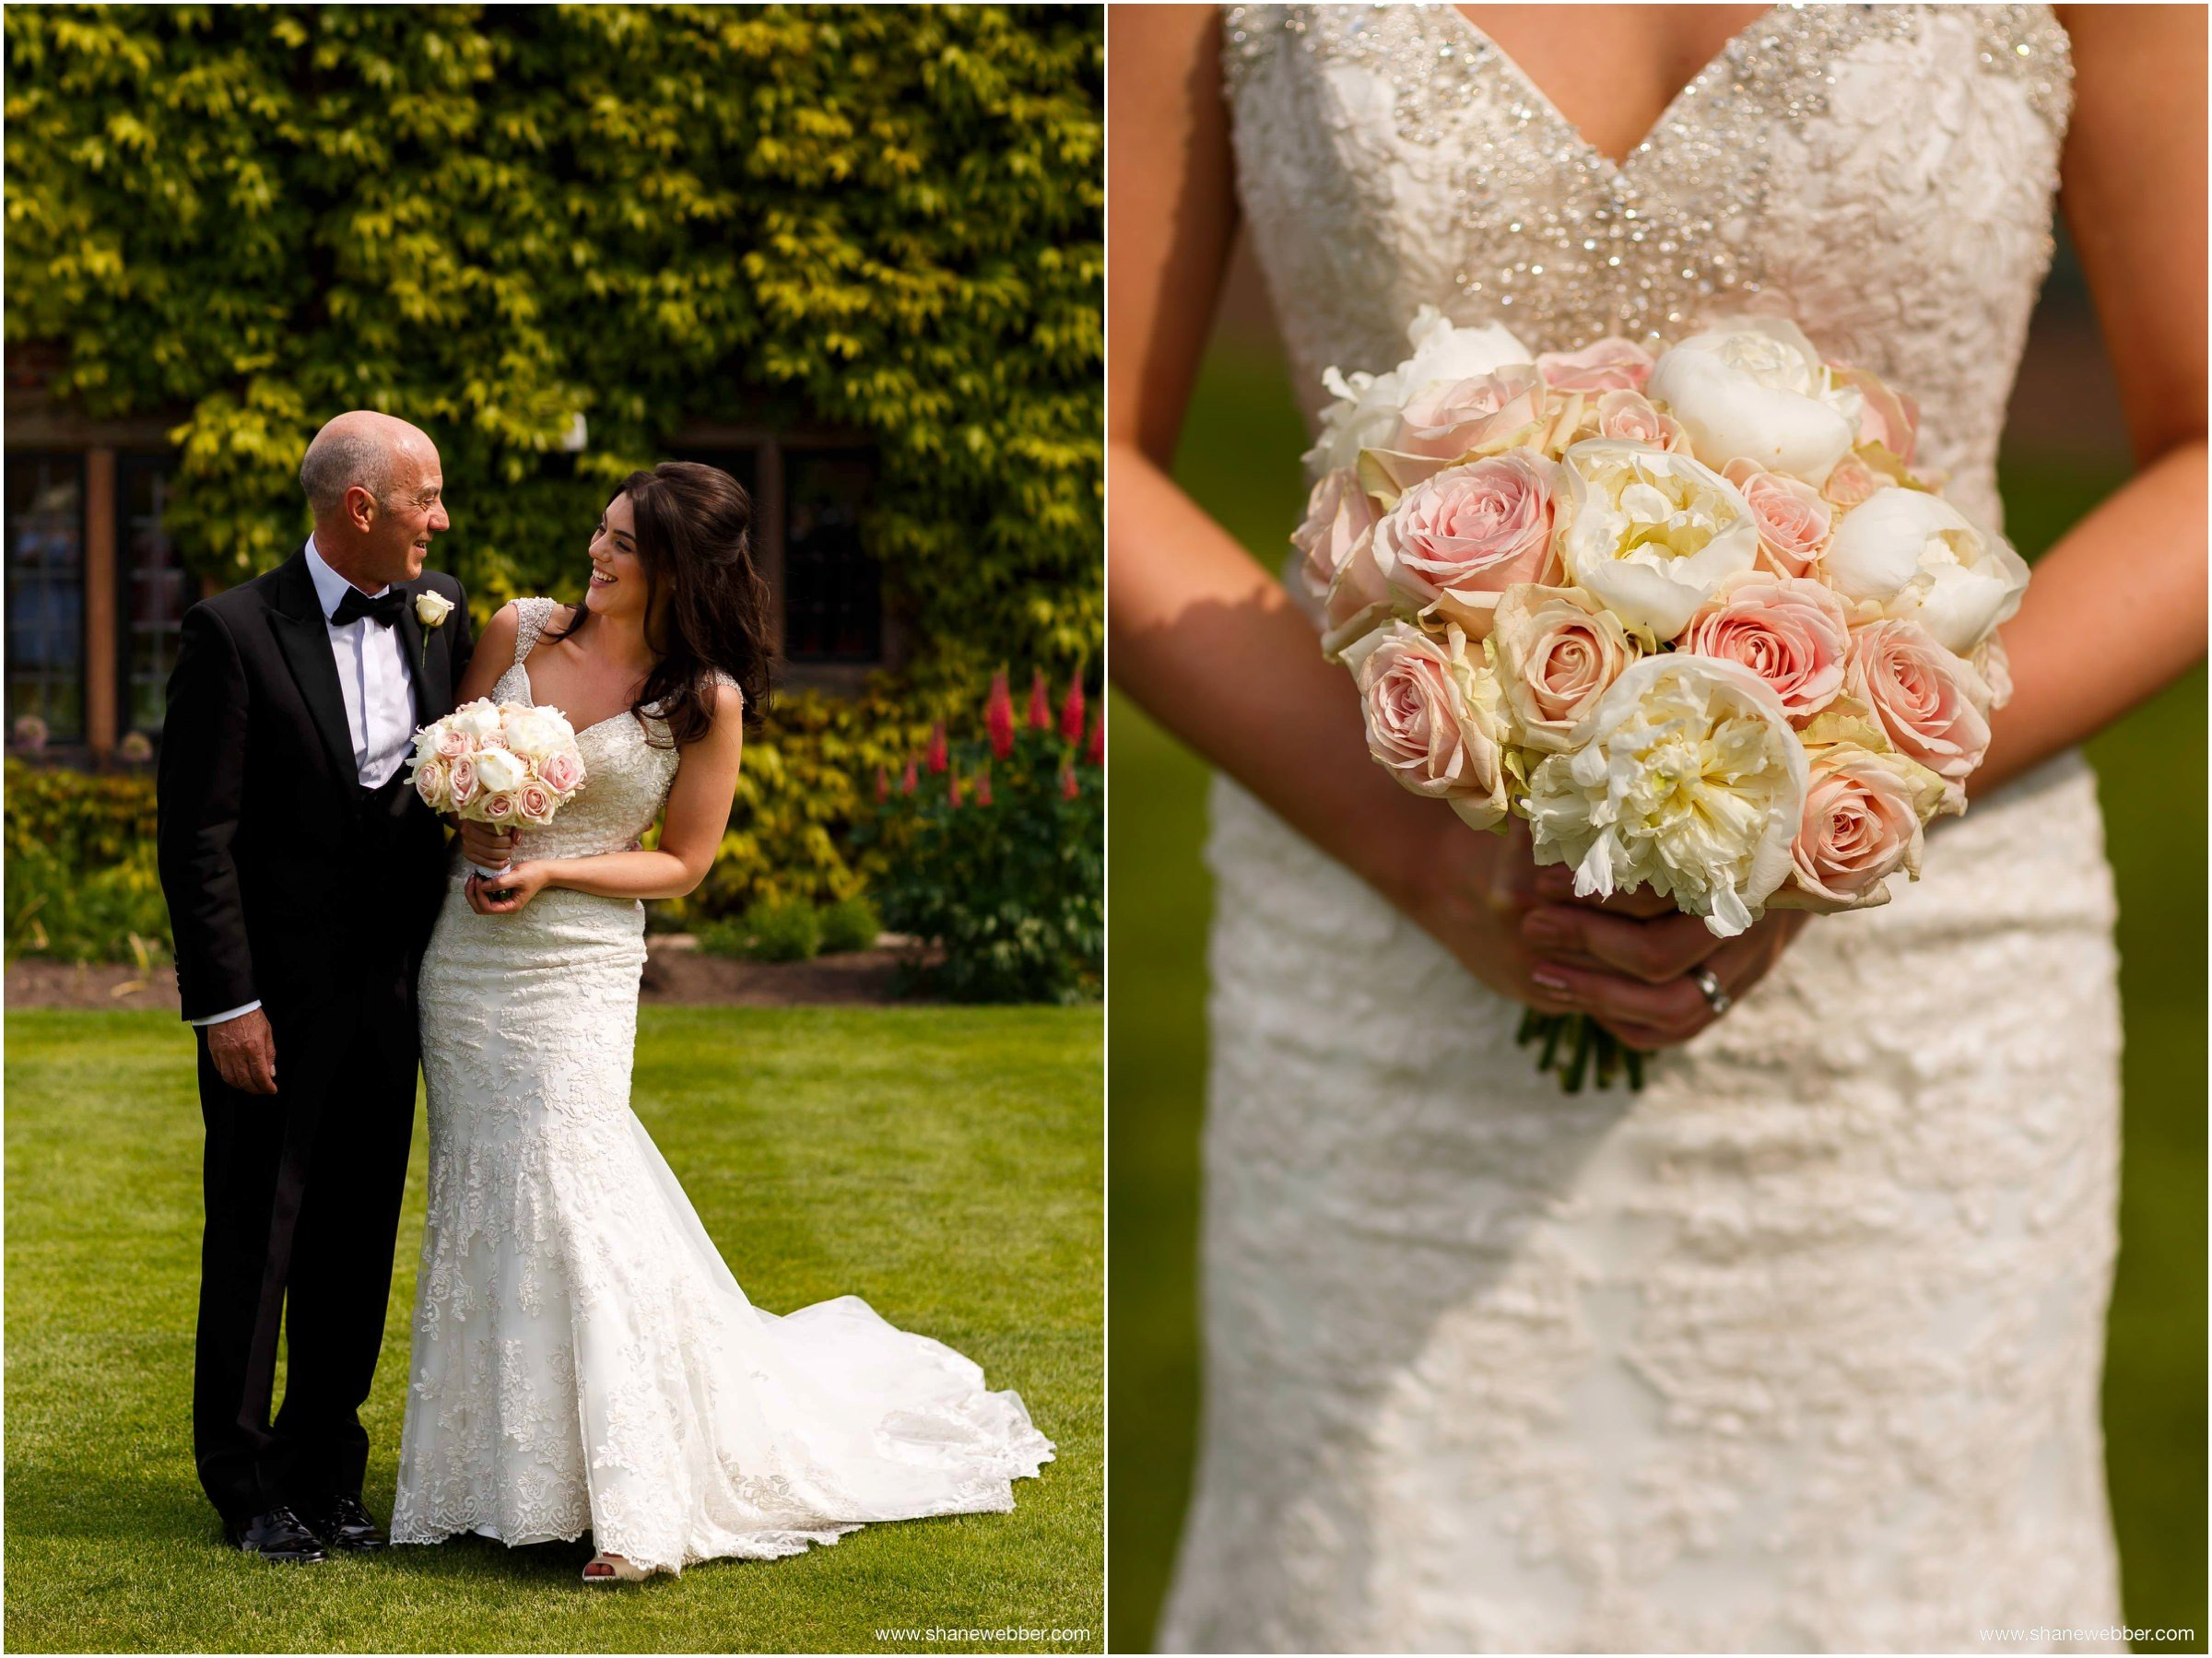 Stunning bride with flowers